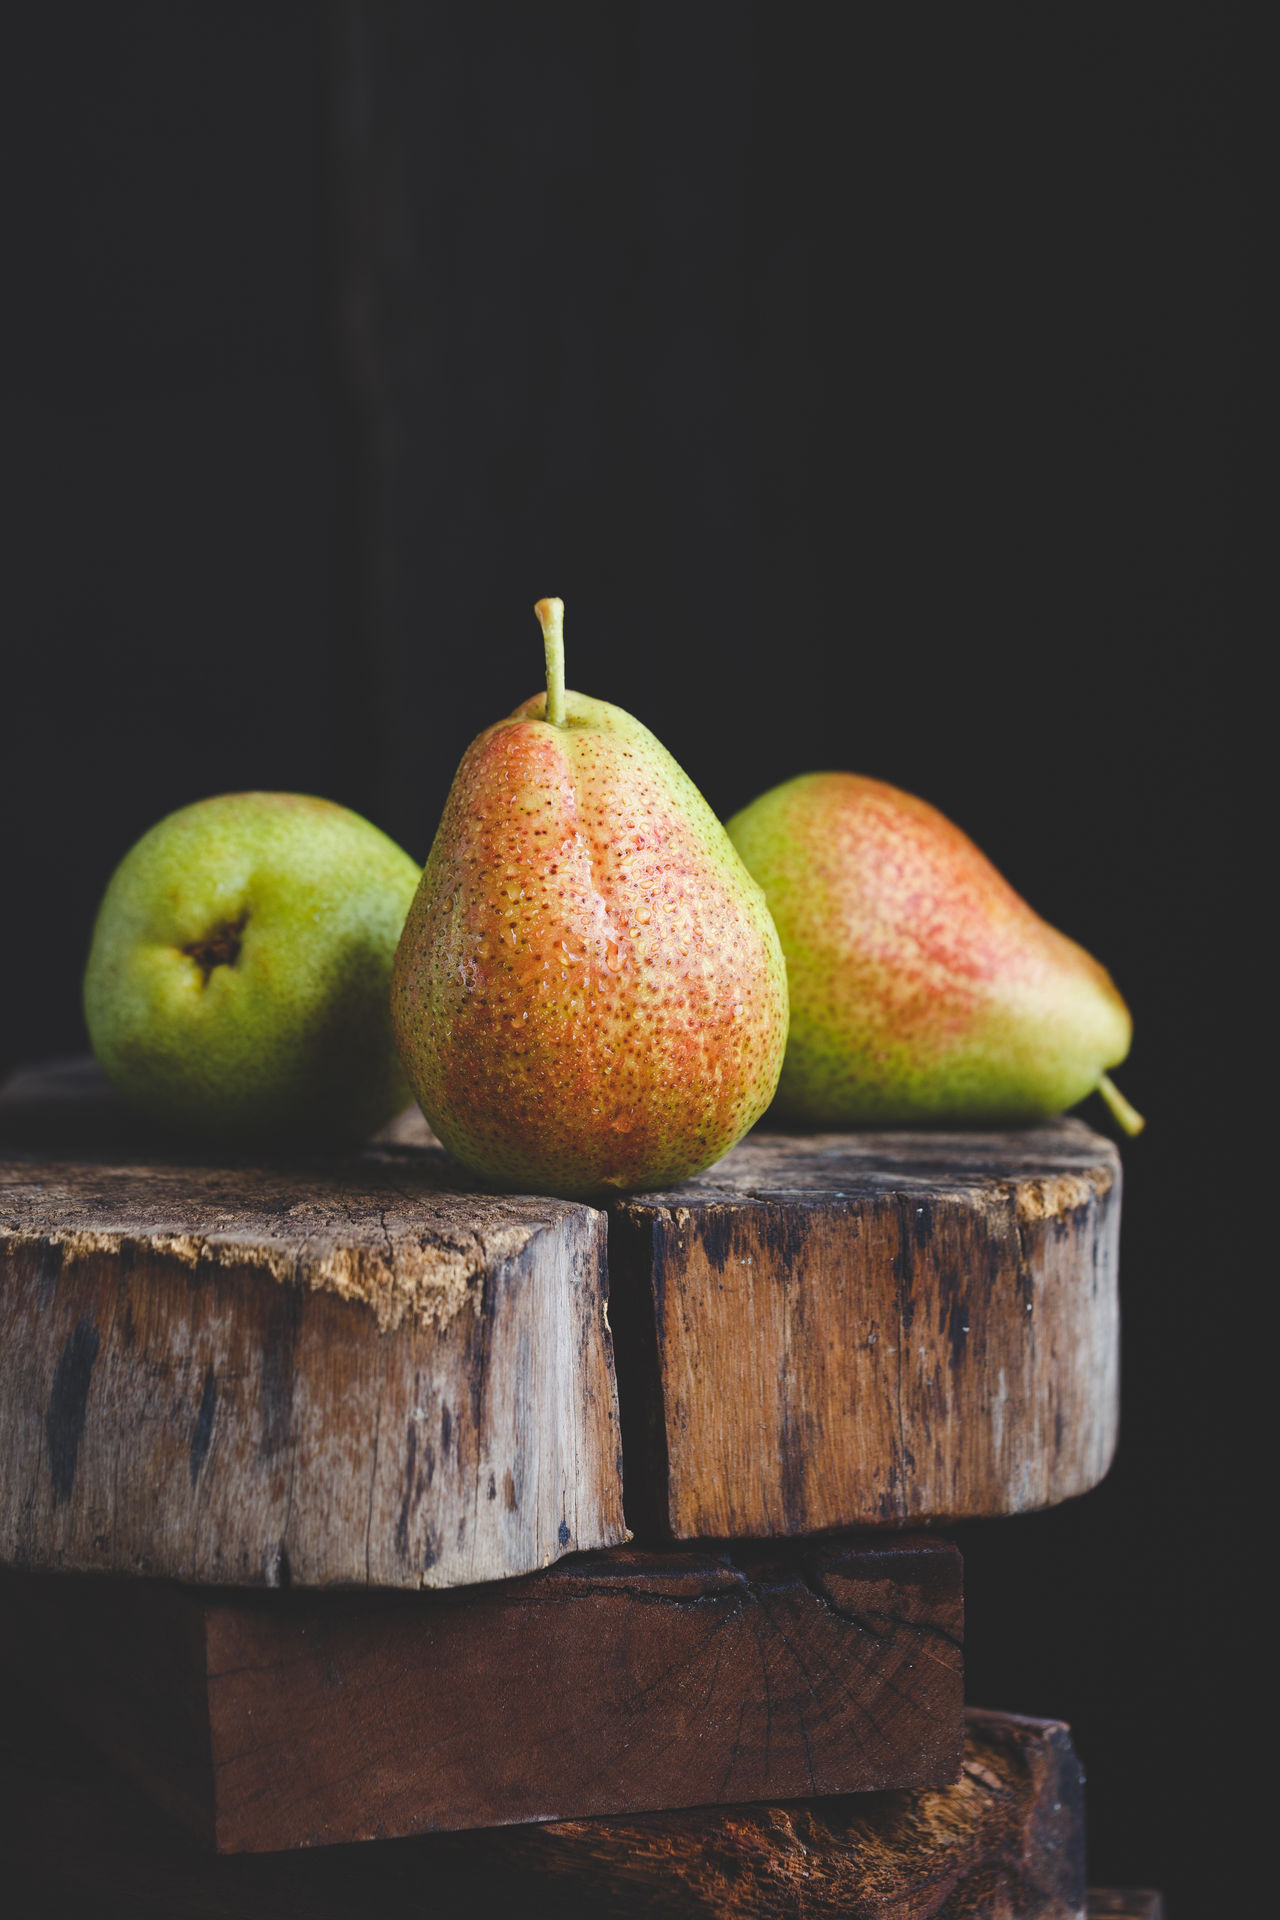 3 Forelle Pears Agriculture Art ASIA Backgrounds Darkness And Light First Eyeem Photo Food Food And Drink Fresh Fruit Healthy Eating Old Wood Paper Pear Pure Raw Sunlight Sweet Tasty Vietnam Vitamin